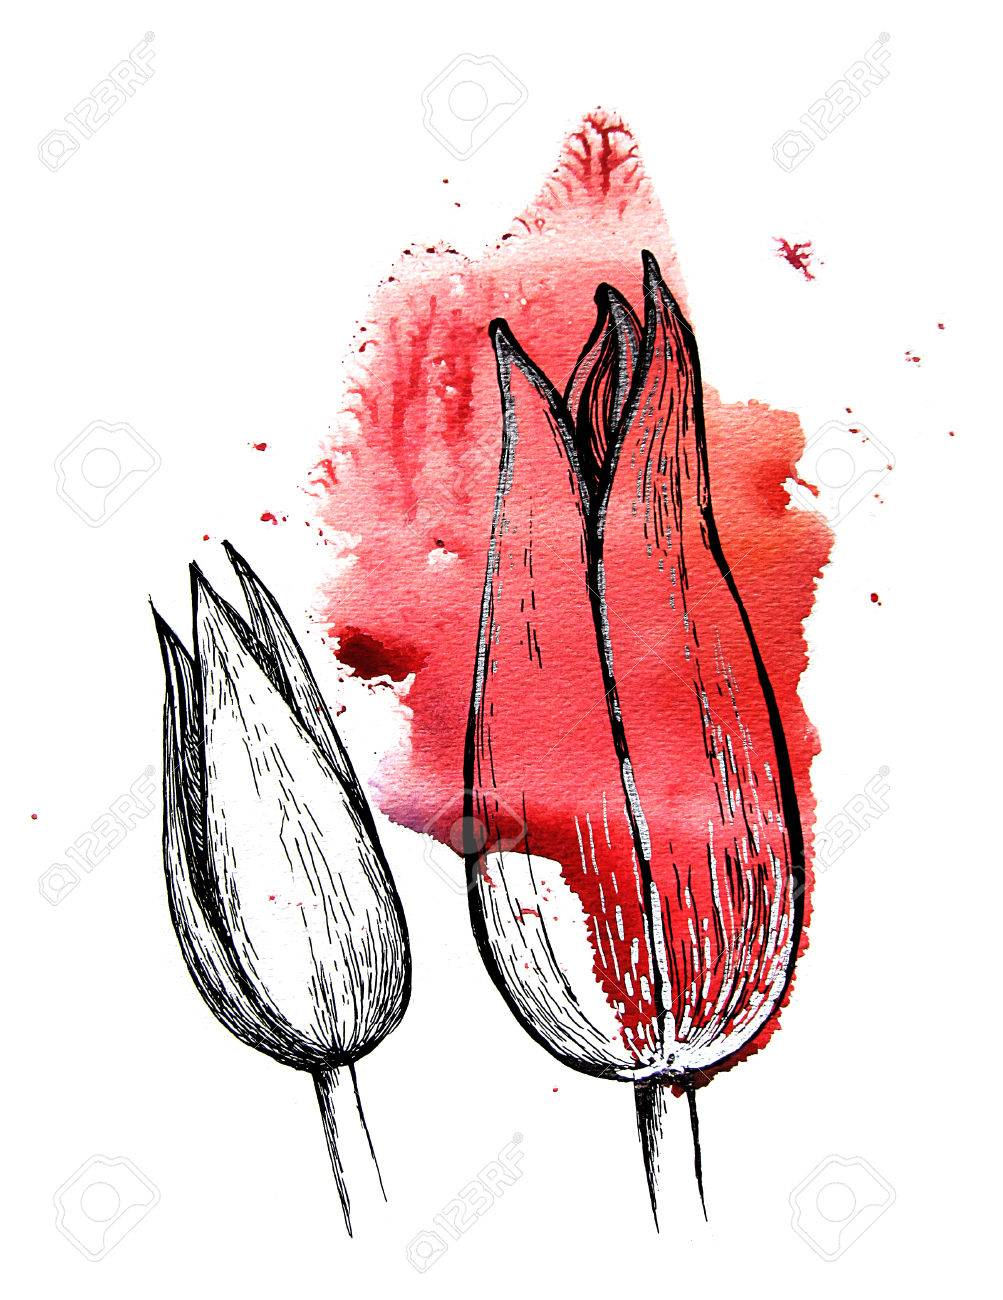 1003x1300 Red Tulip Buds, Handmade Black And Silver Drawing On A Watercolor